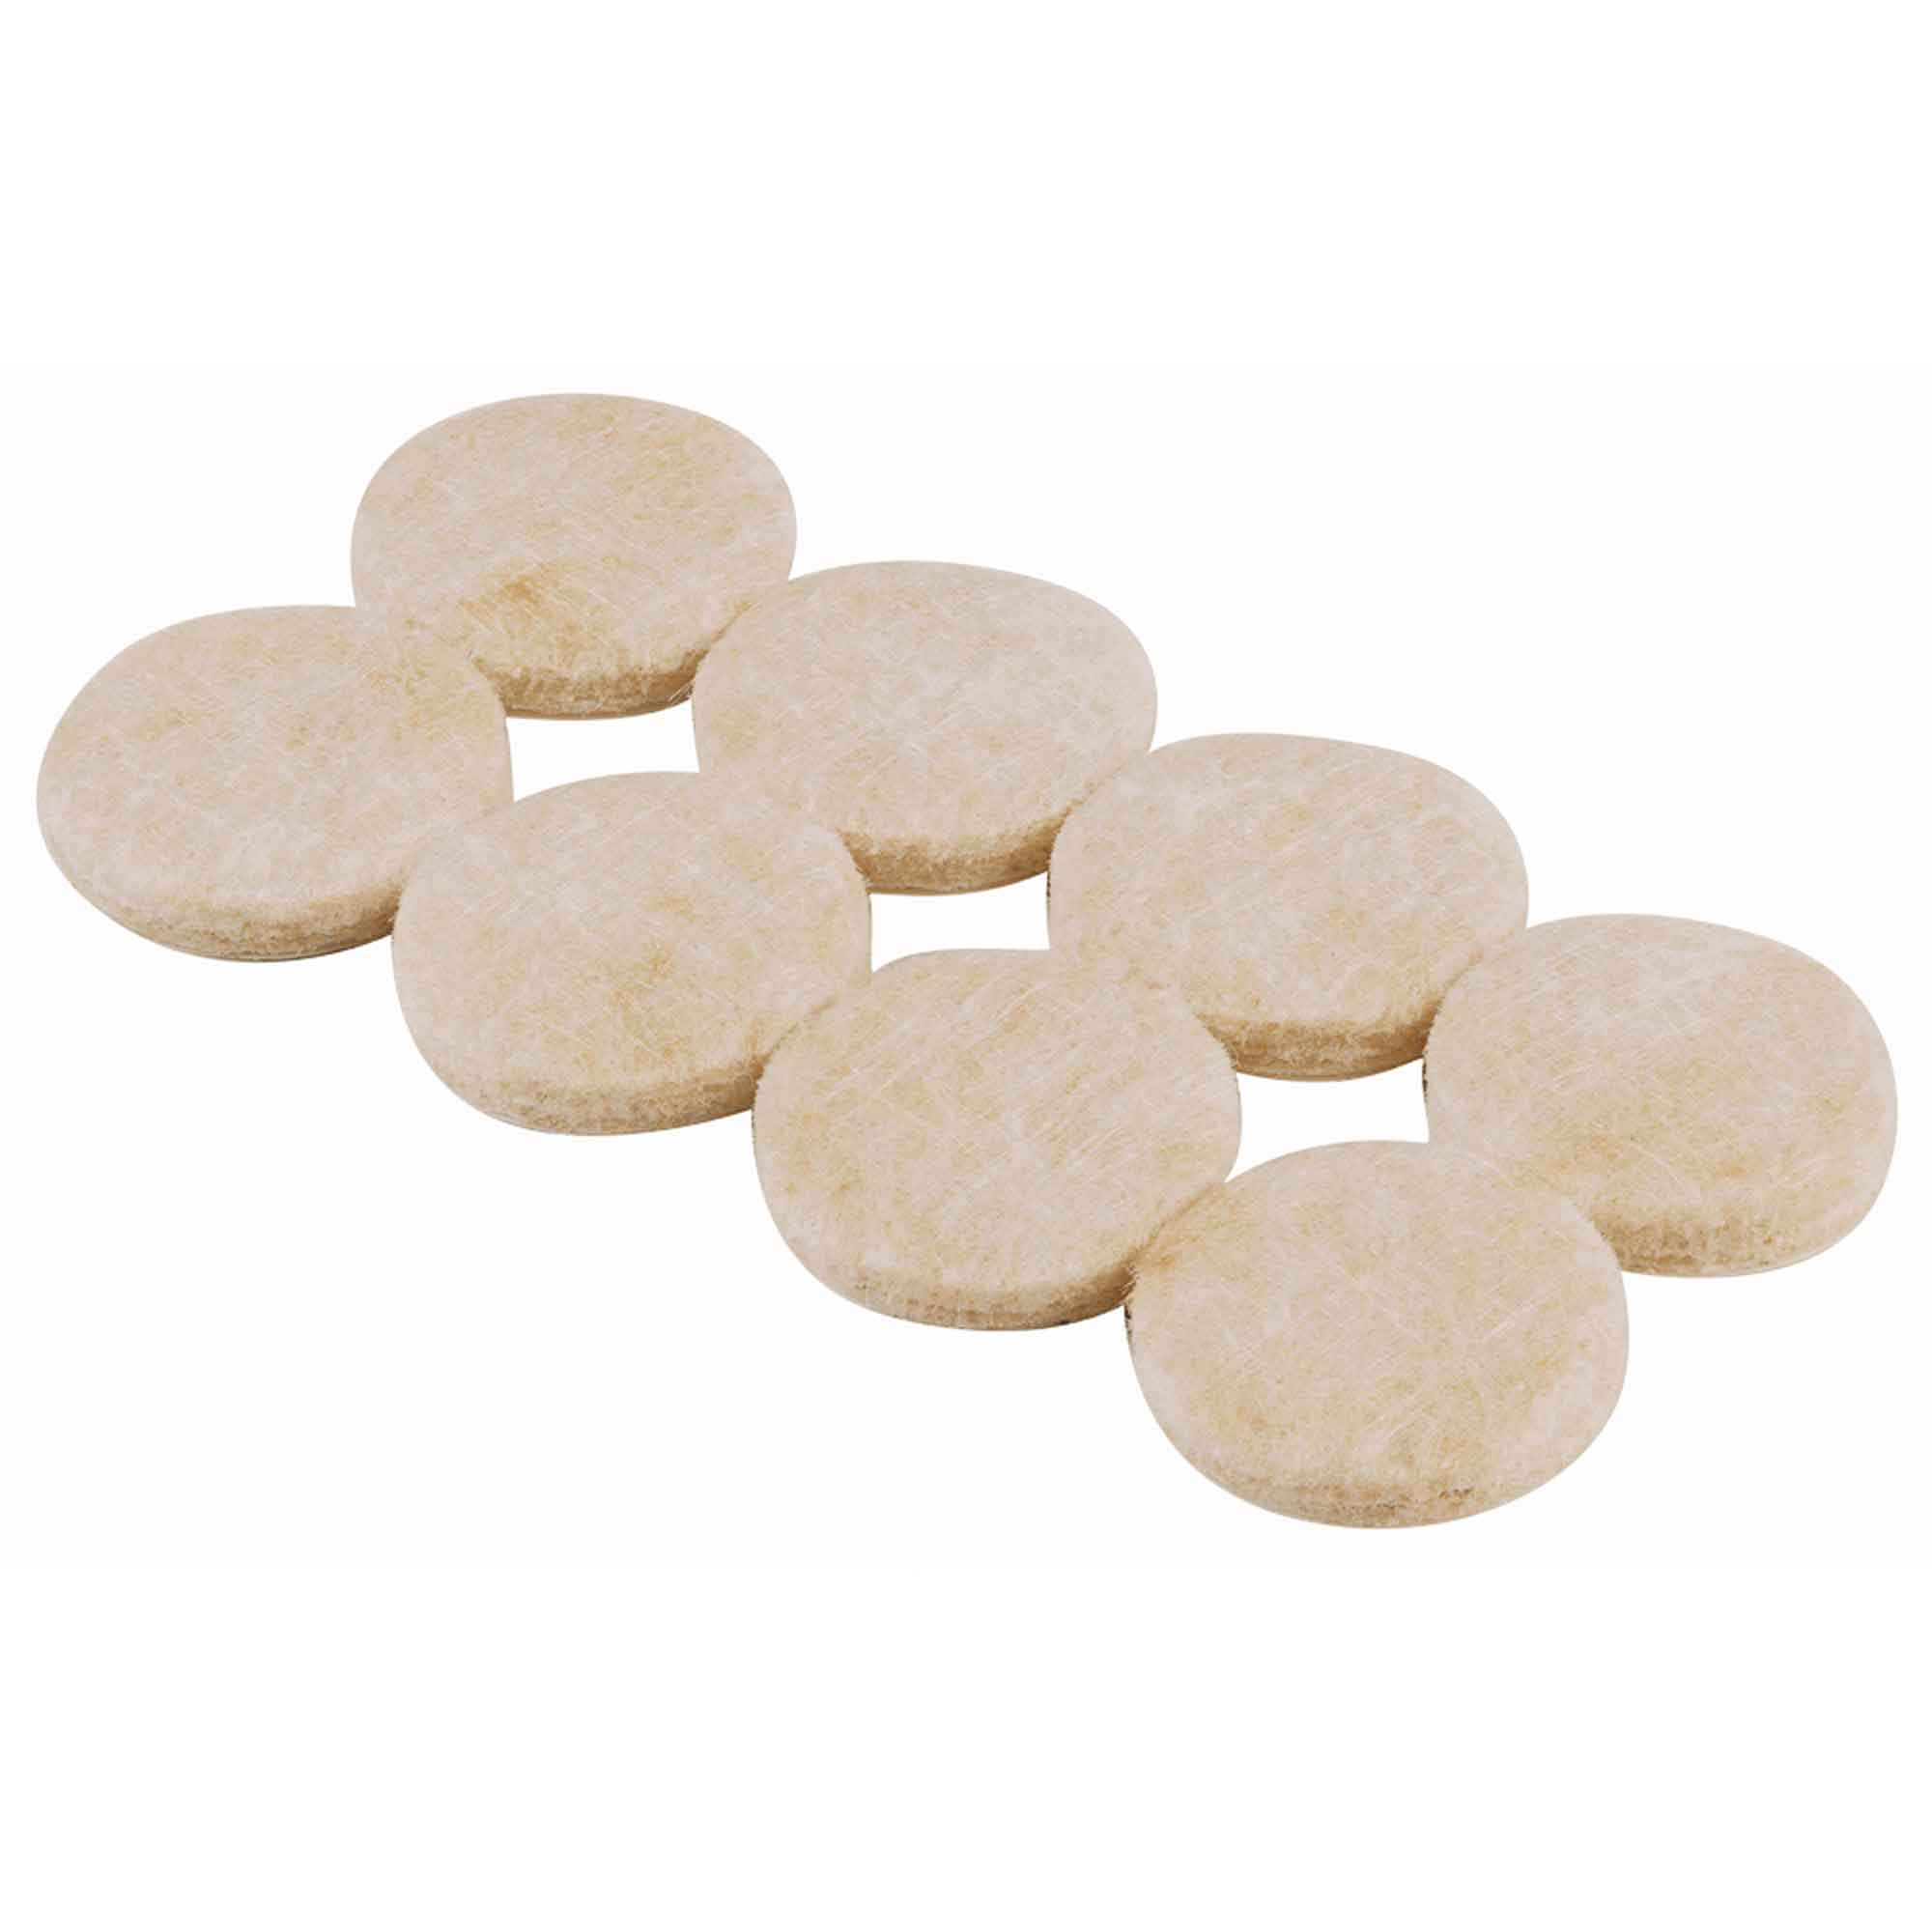 Select Heavy Duty Felt Pads Round 25mm Pack of 16